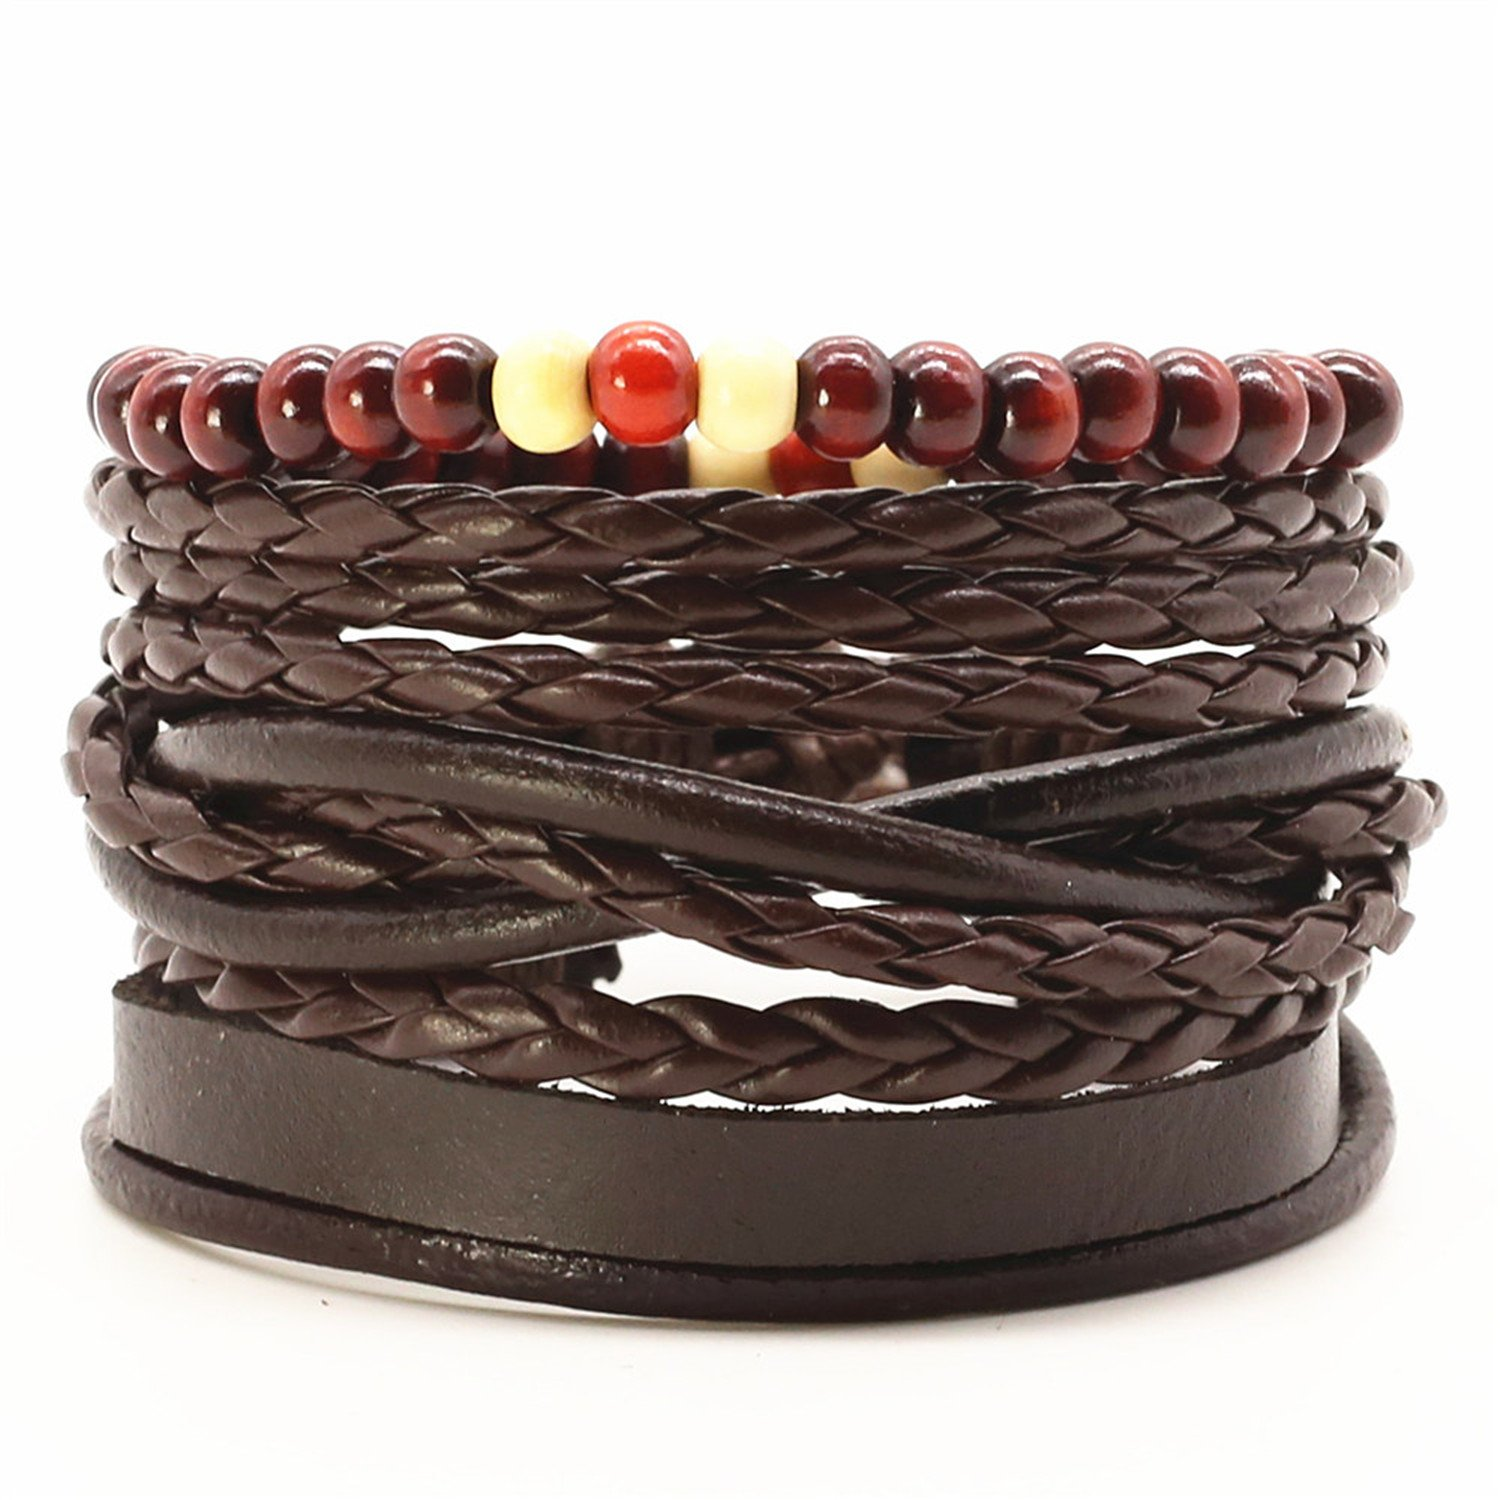 sportsmanship Causul Handmade Beads Rope Woven Men Multilayer Charm Leather Bracelets for Women Homme Fashion Jewelry Accessories